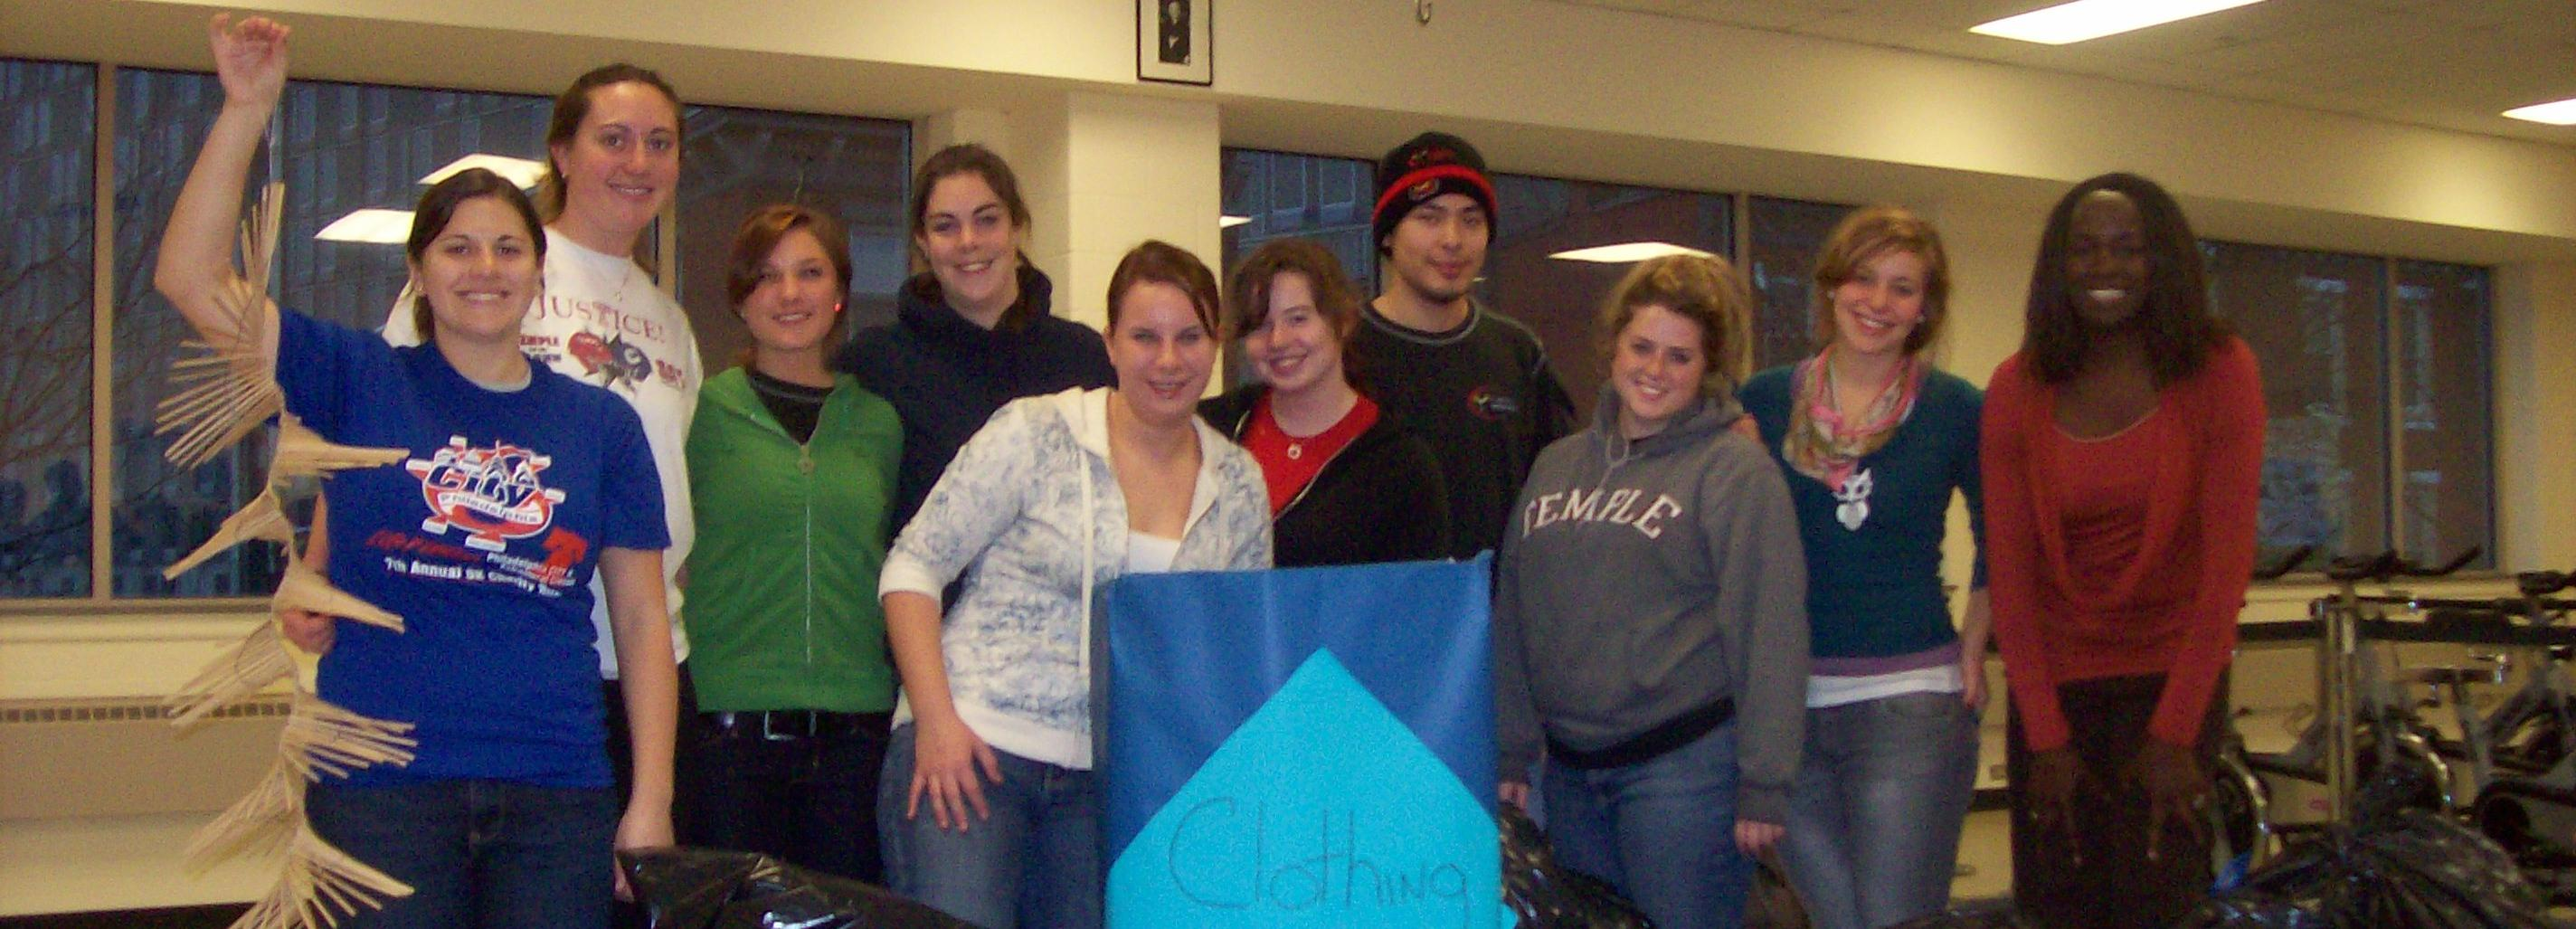 Students and staff assisting with a clothing drive